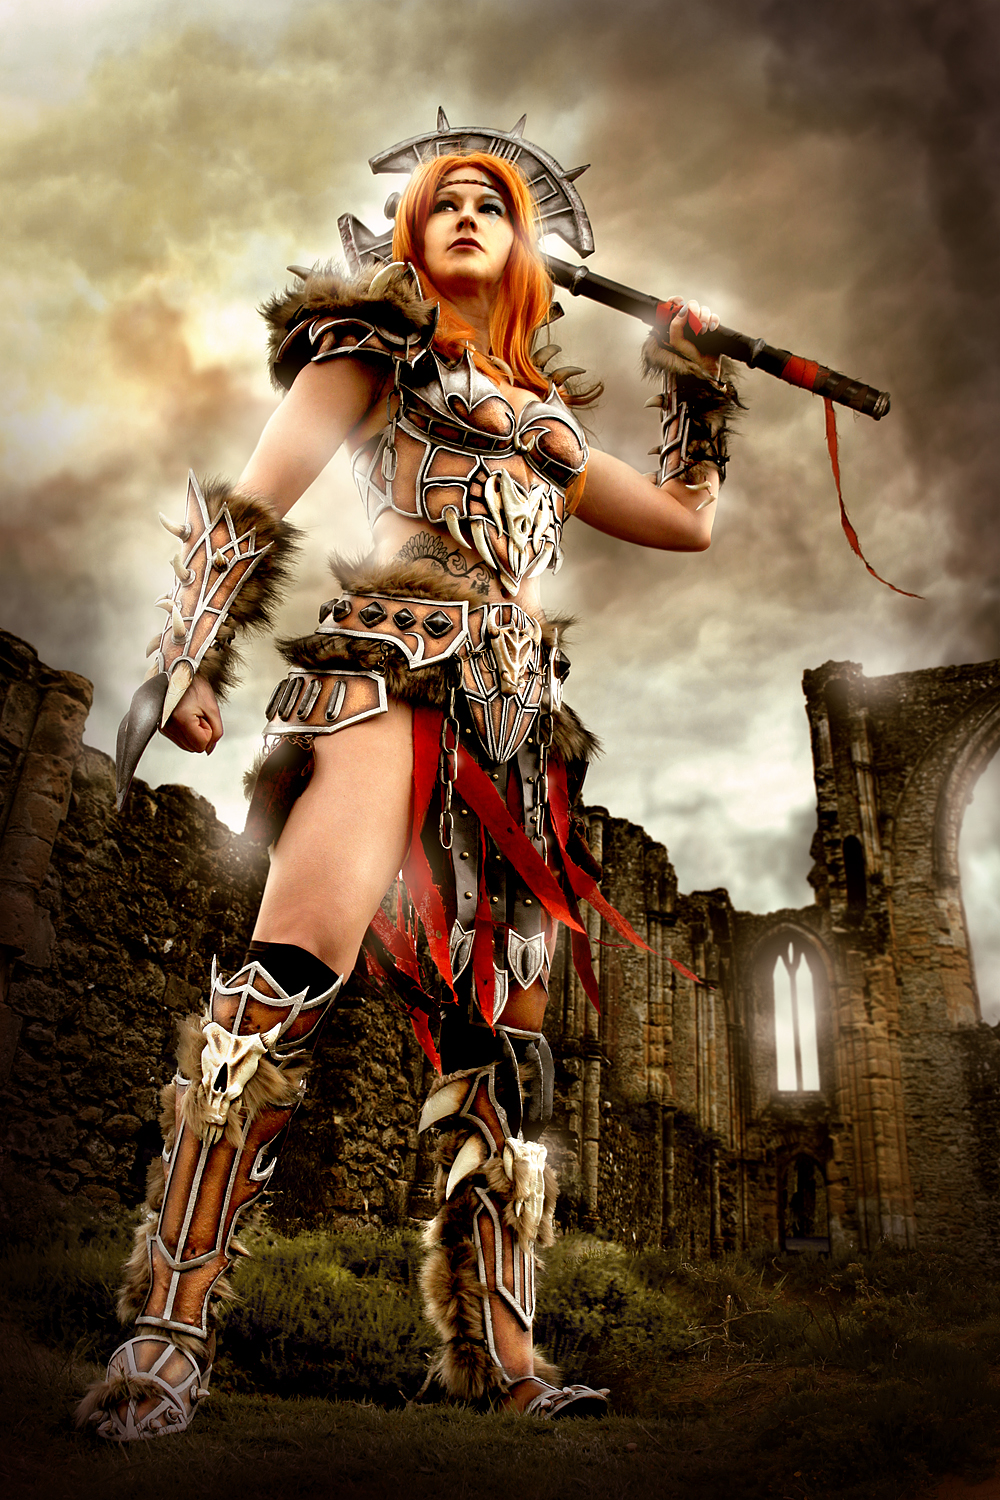 The Barbarian: Nephalem Glory by LittleBlondeGoth